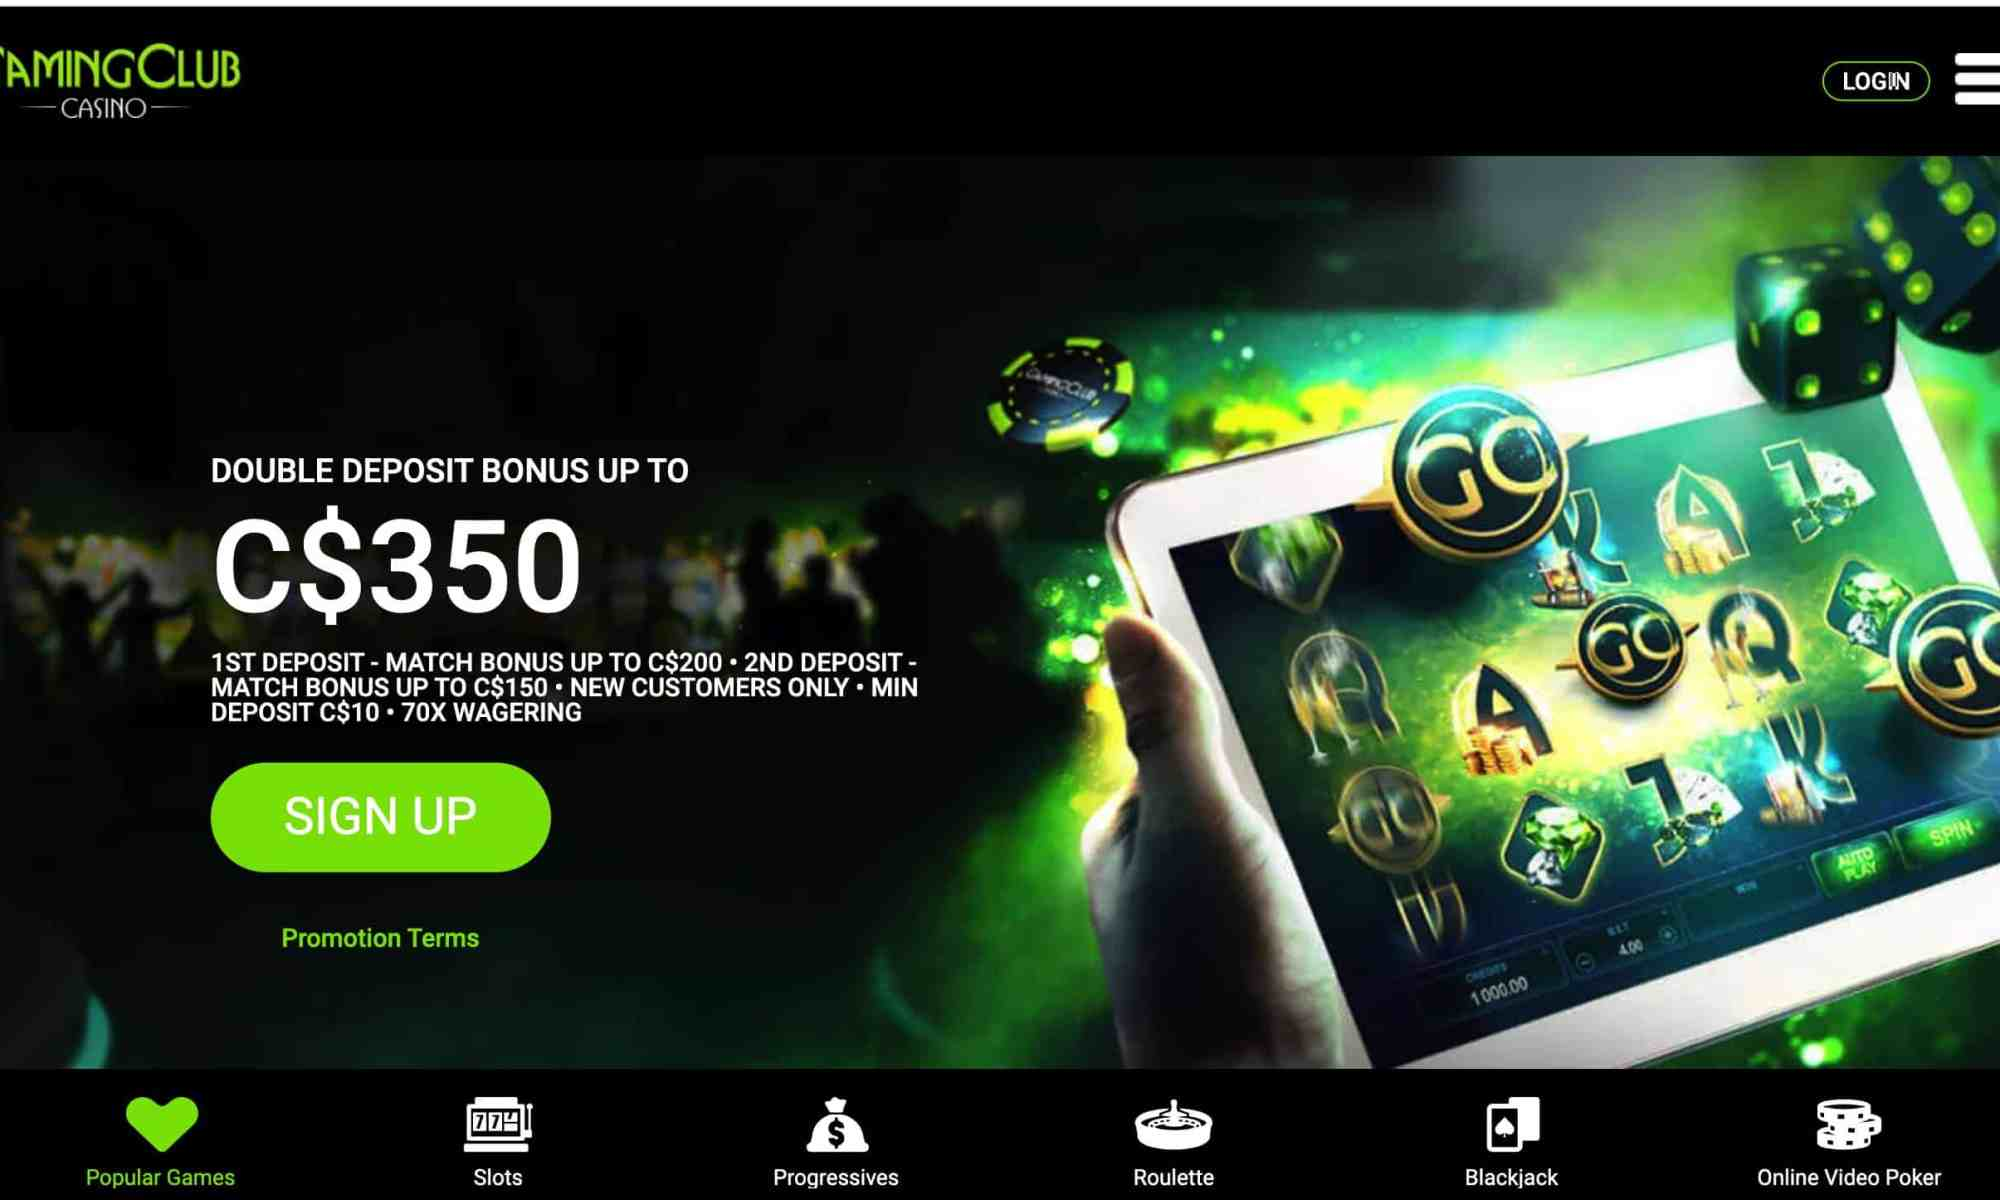 Gaming Club Casino - 250% match bonus of up to $200 free